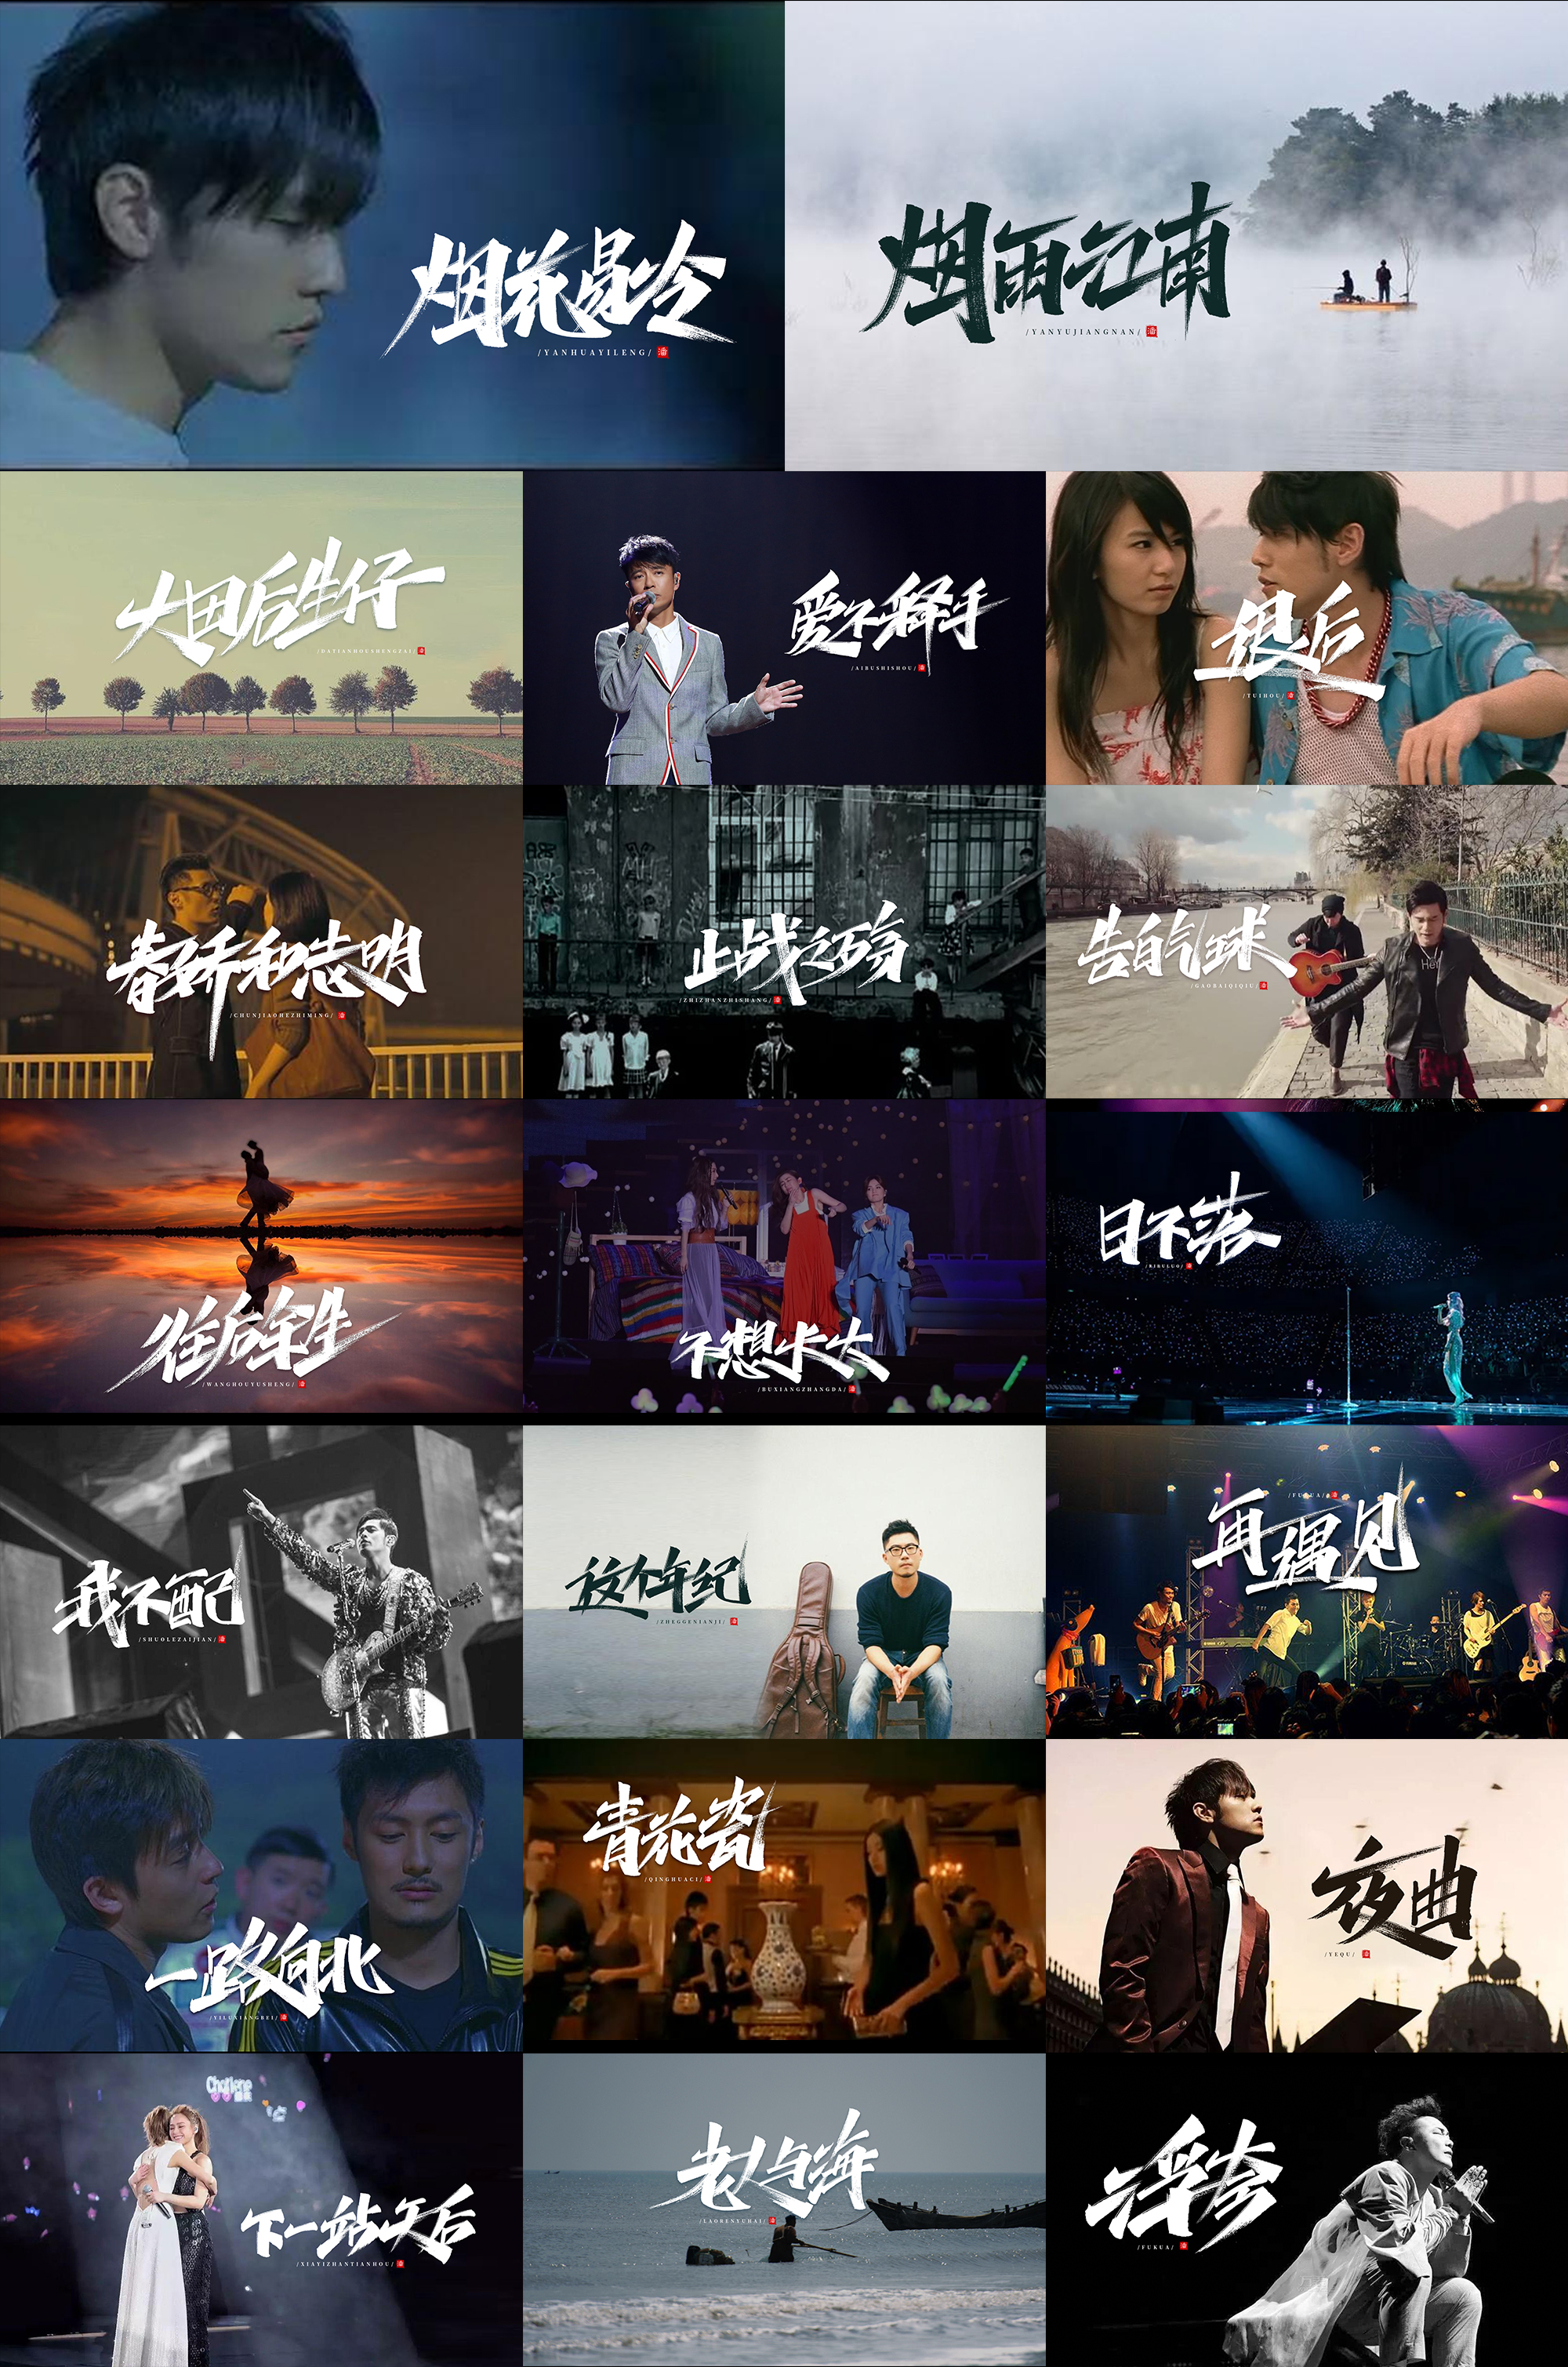 The font design of Chinese pop music's title